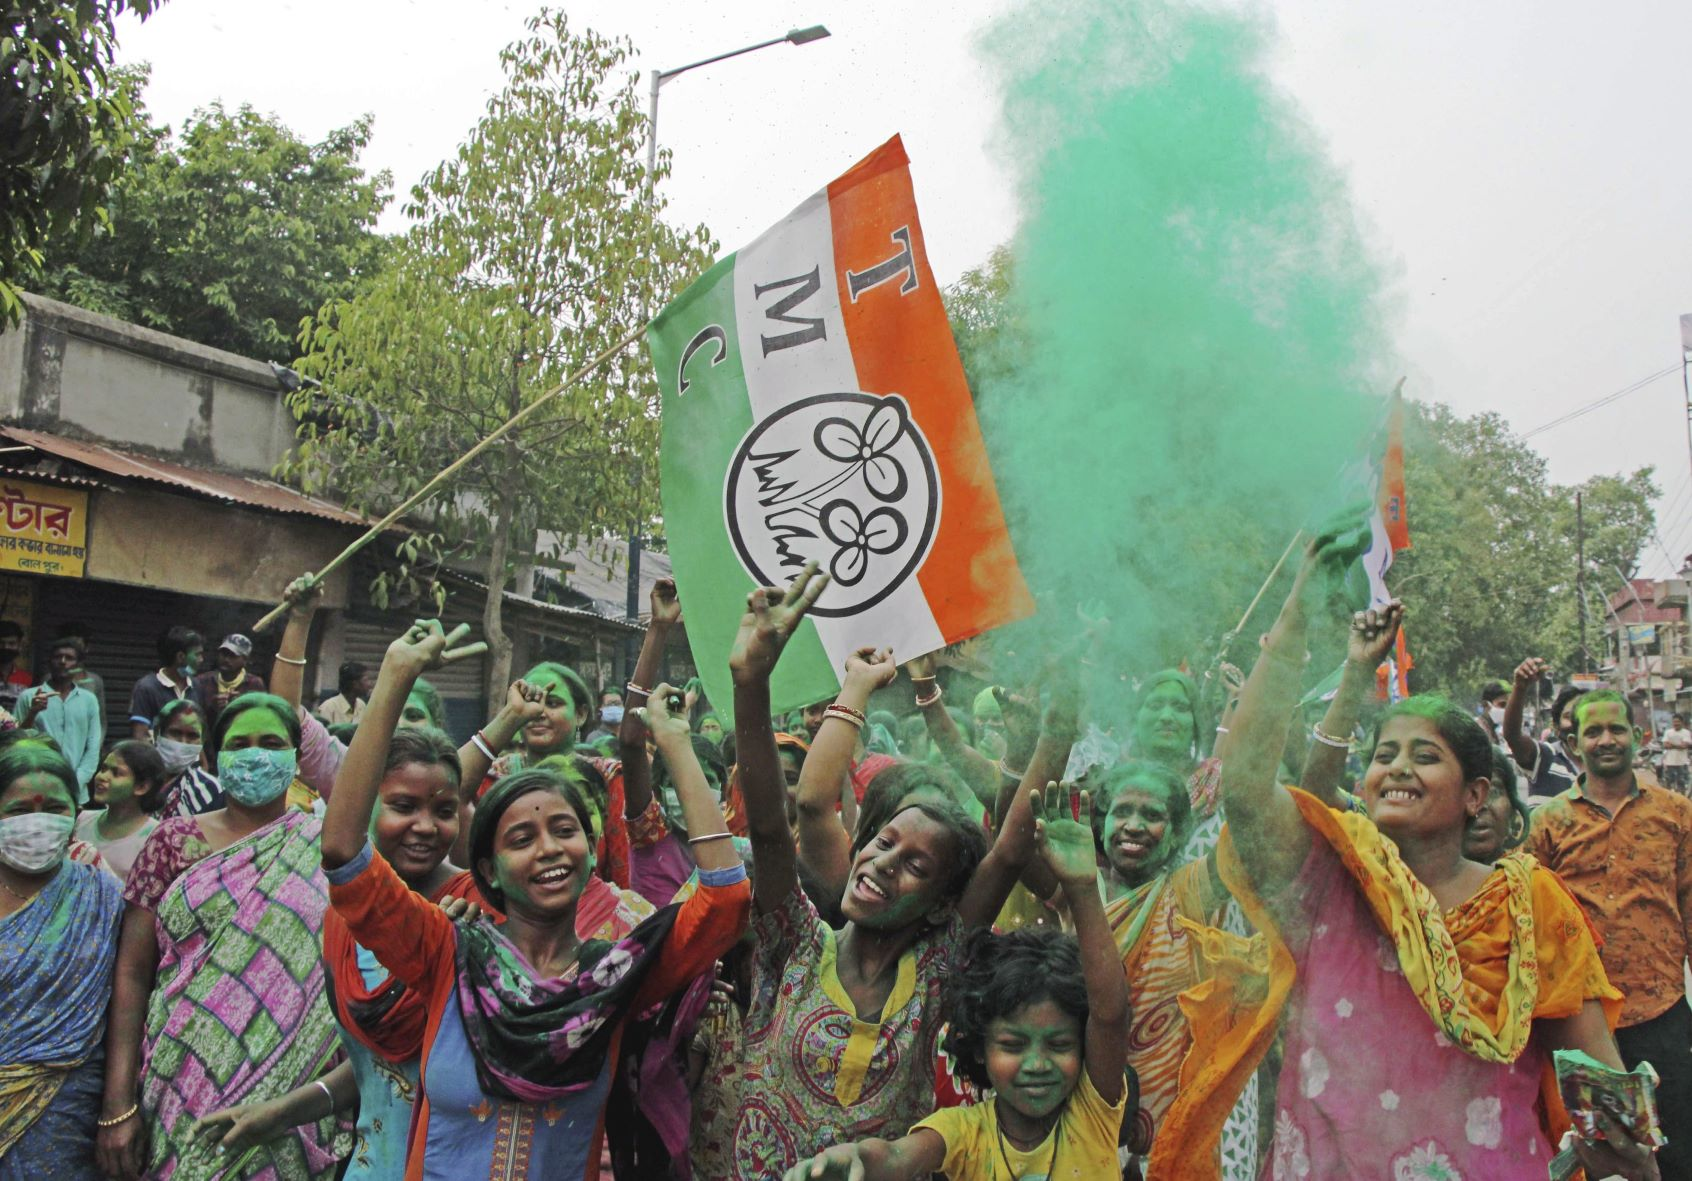 Birbhum: TMC supporters celebrate winning trend in the West Bengal state assembly elections at Bolpur in the Birbhum district of West Bengal, Sunday, May 2, 2021. (PTI Photo)(PTI05 02 2021 000235B)